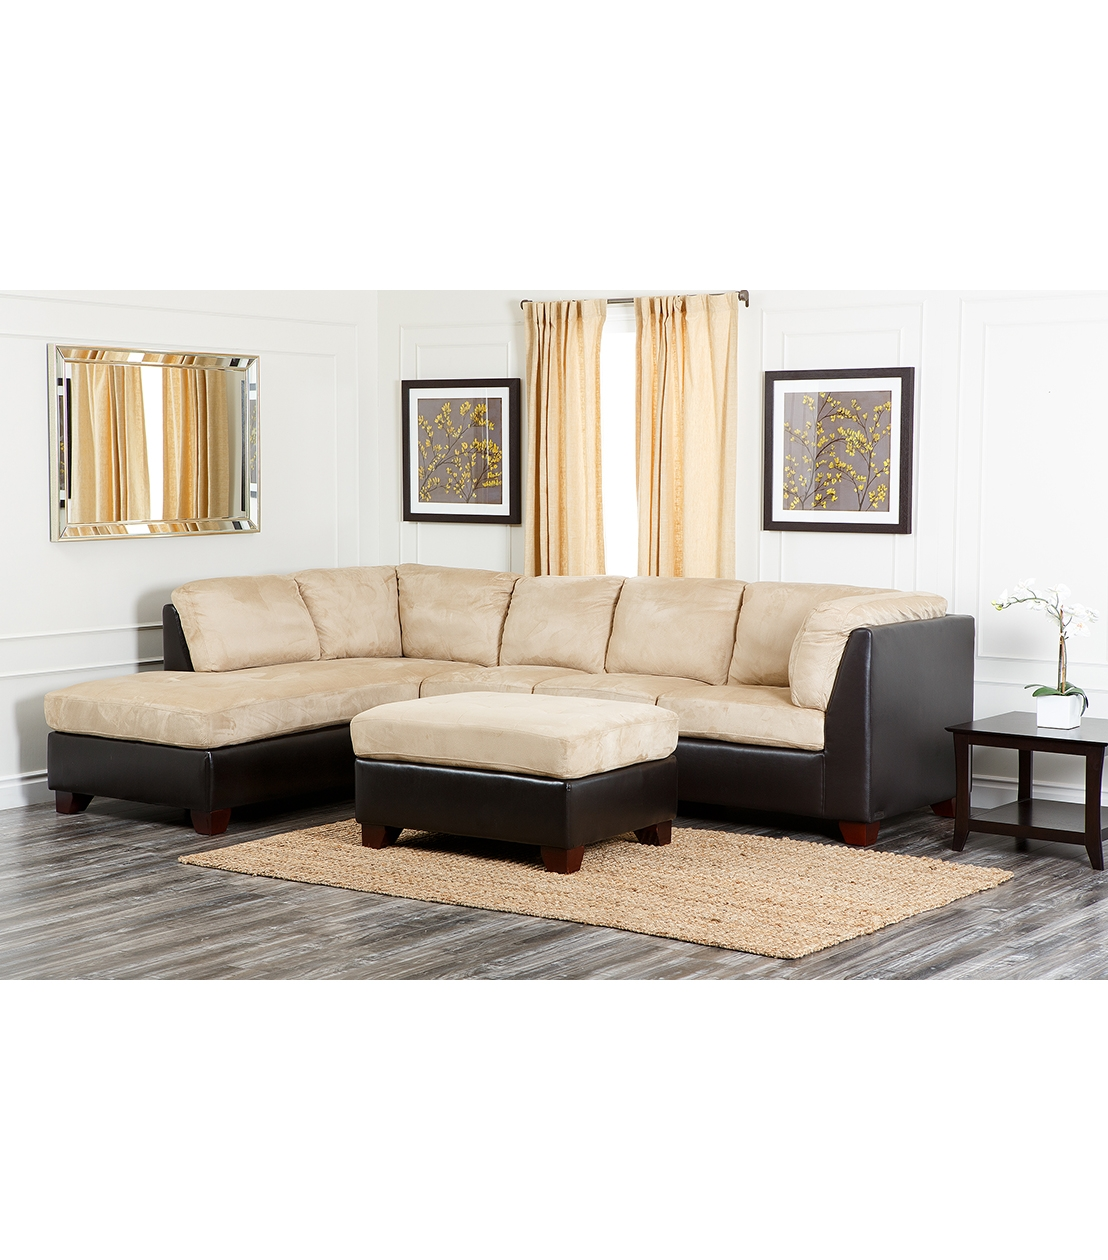 Sectionals Intended For Abbyson Sectional Sofa (View 14 of 15)